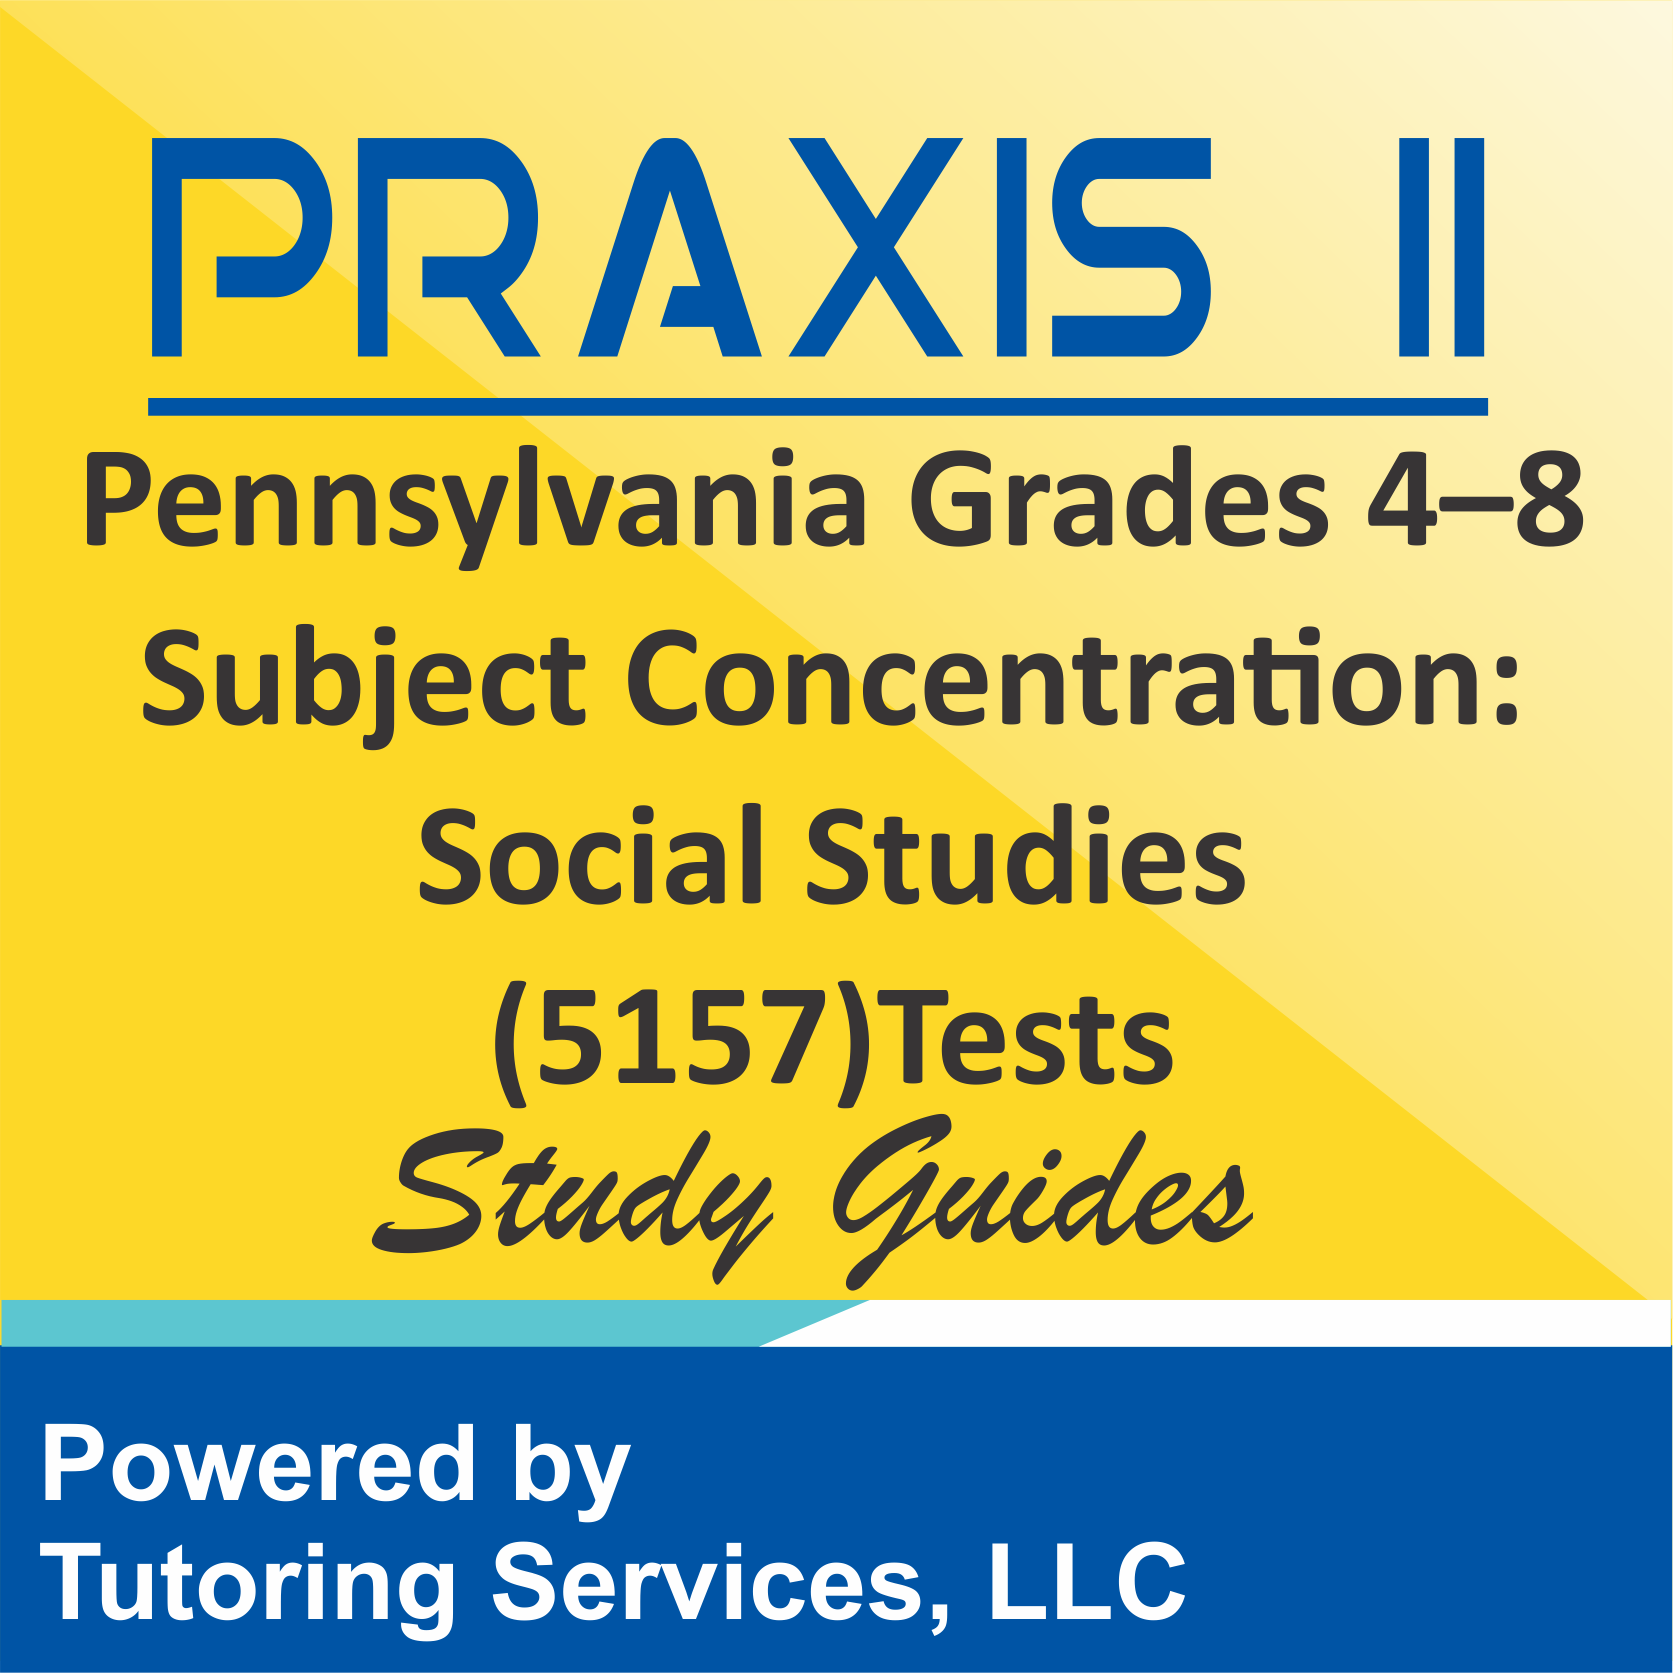 Praxis II Pennsylvania Grades 4-8 Subject Concentration: Social Studies (5157) Test